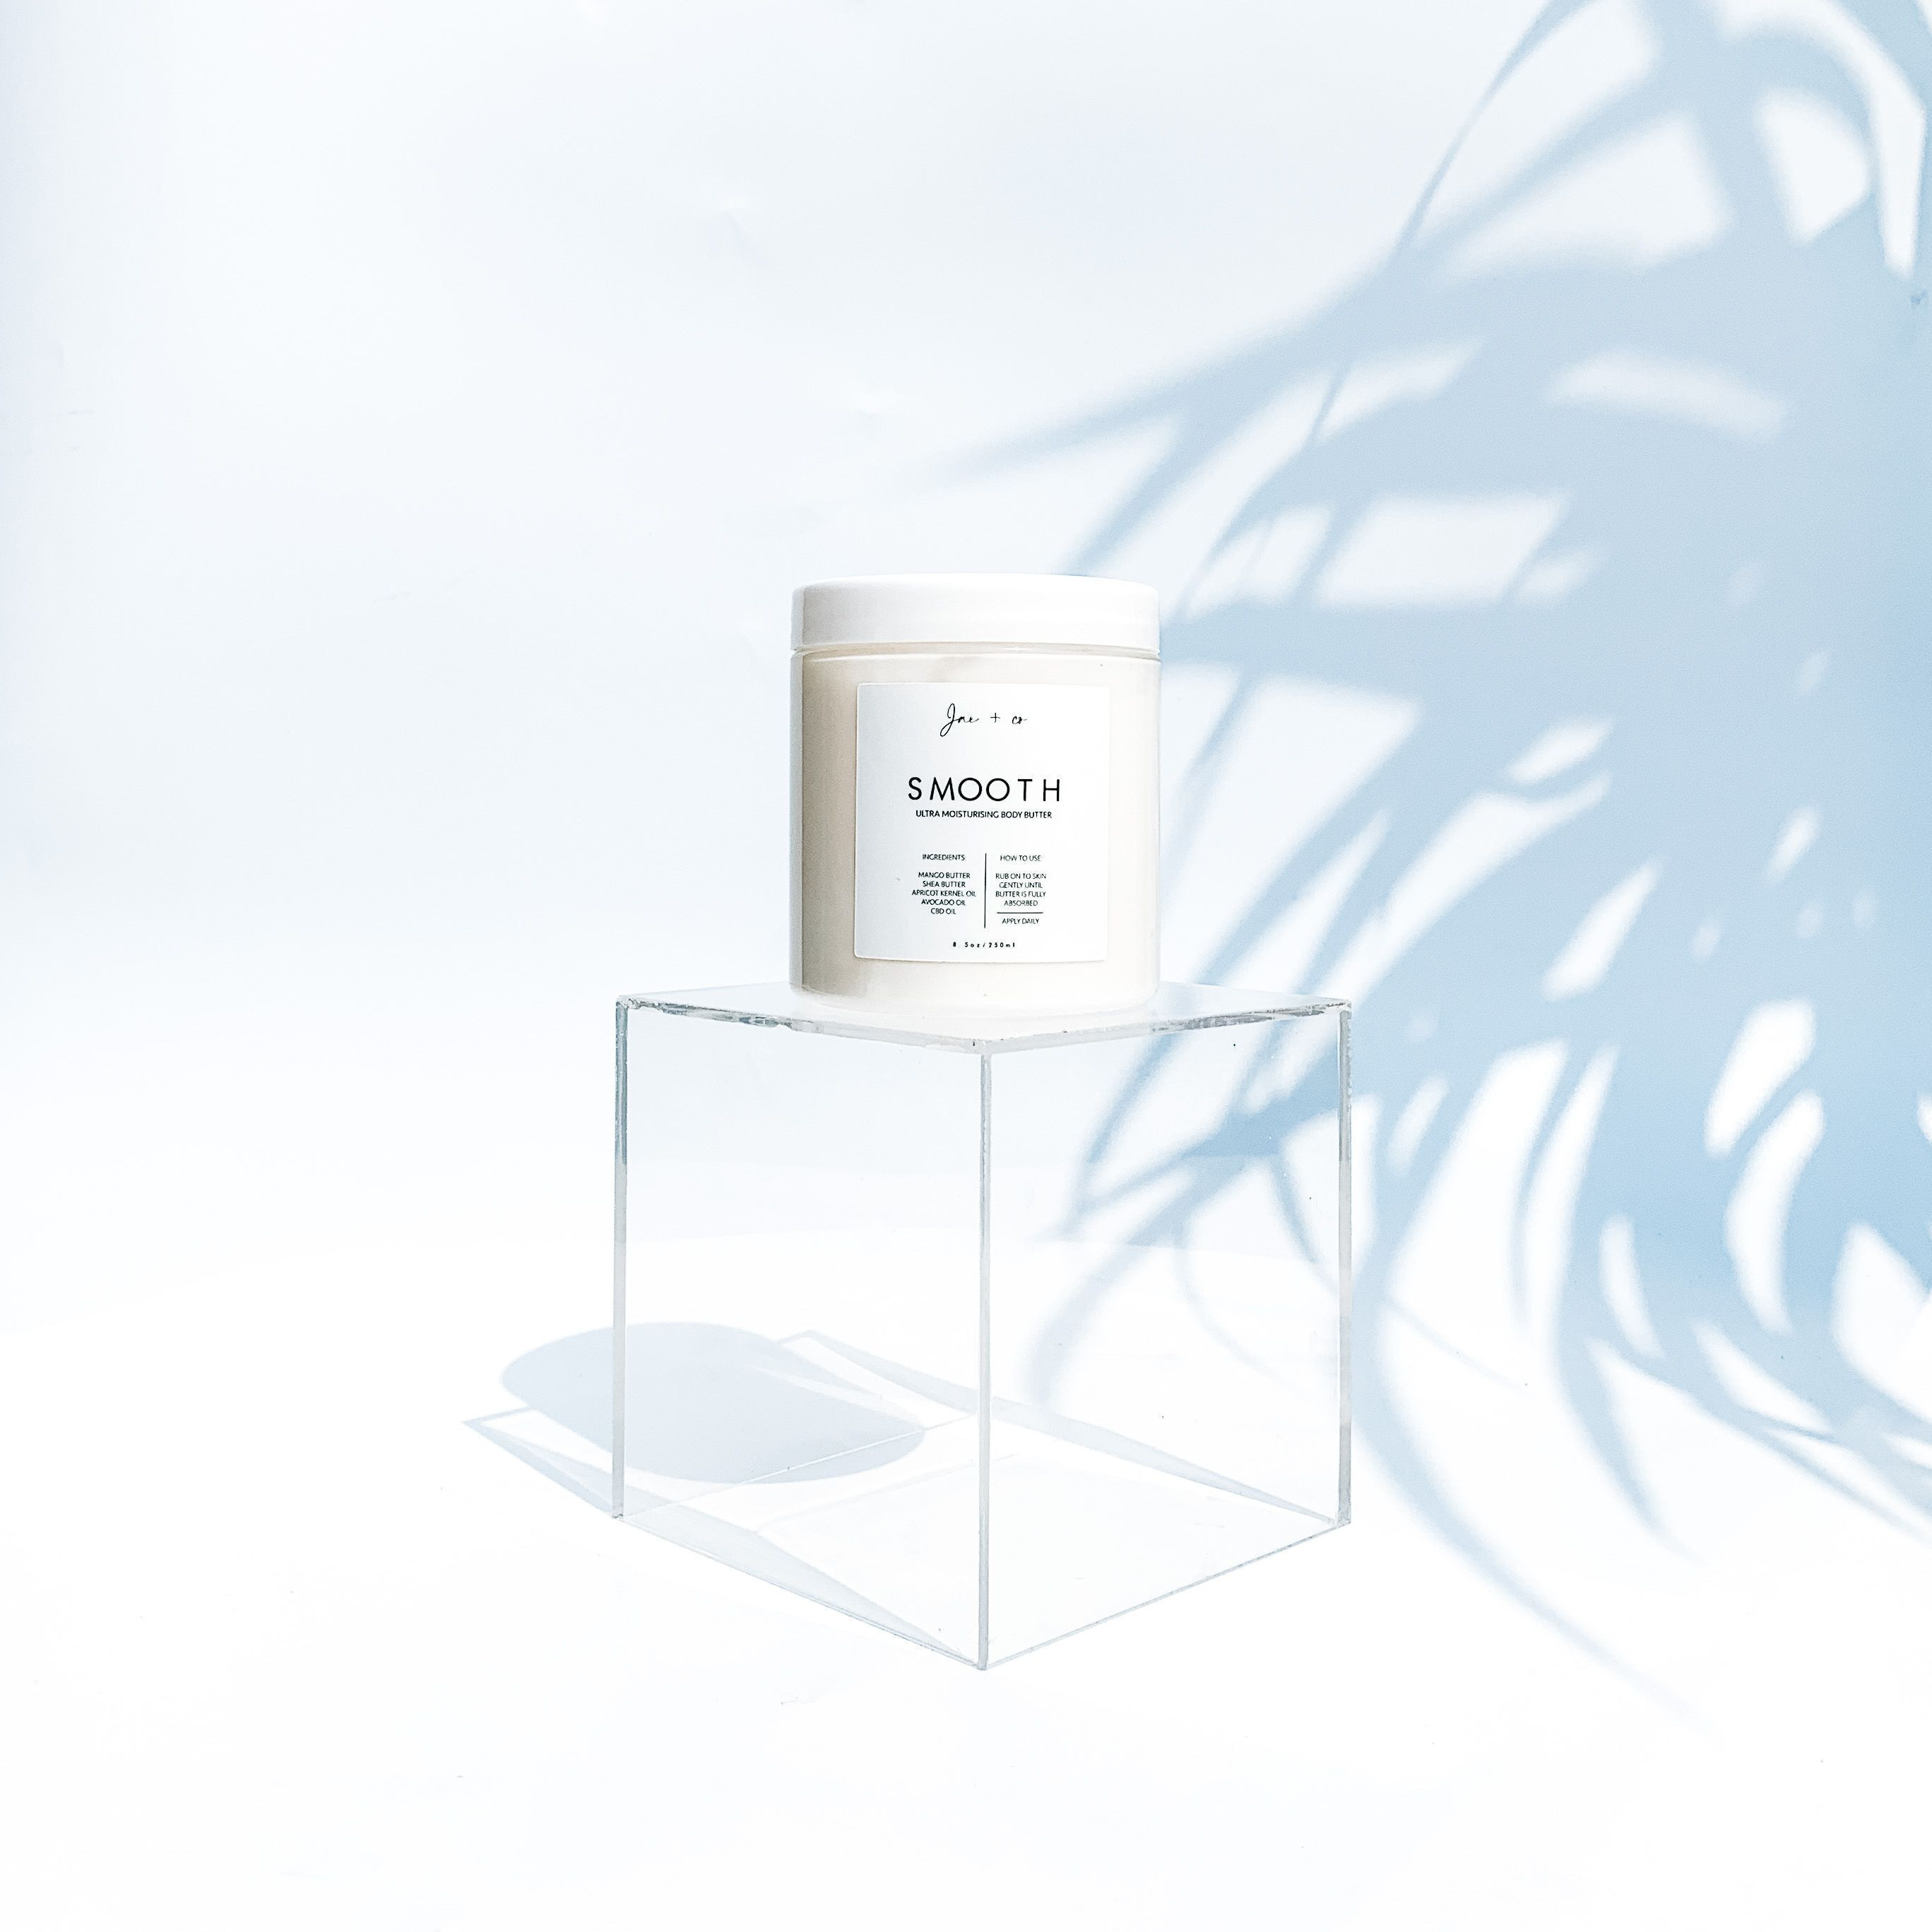 SMOOTH - FRAGRANCED BODY BUTTER